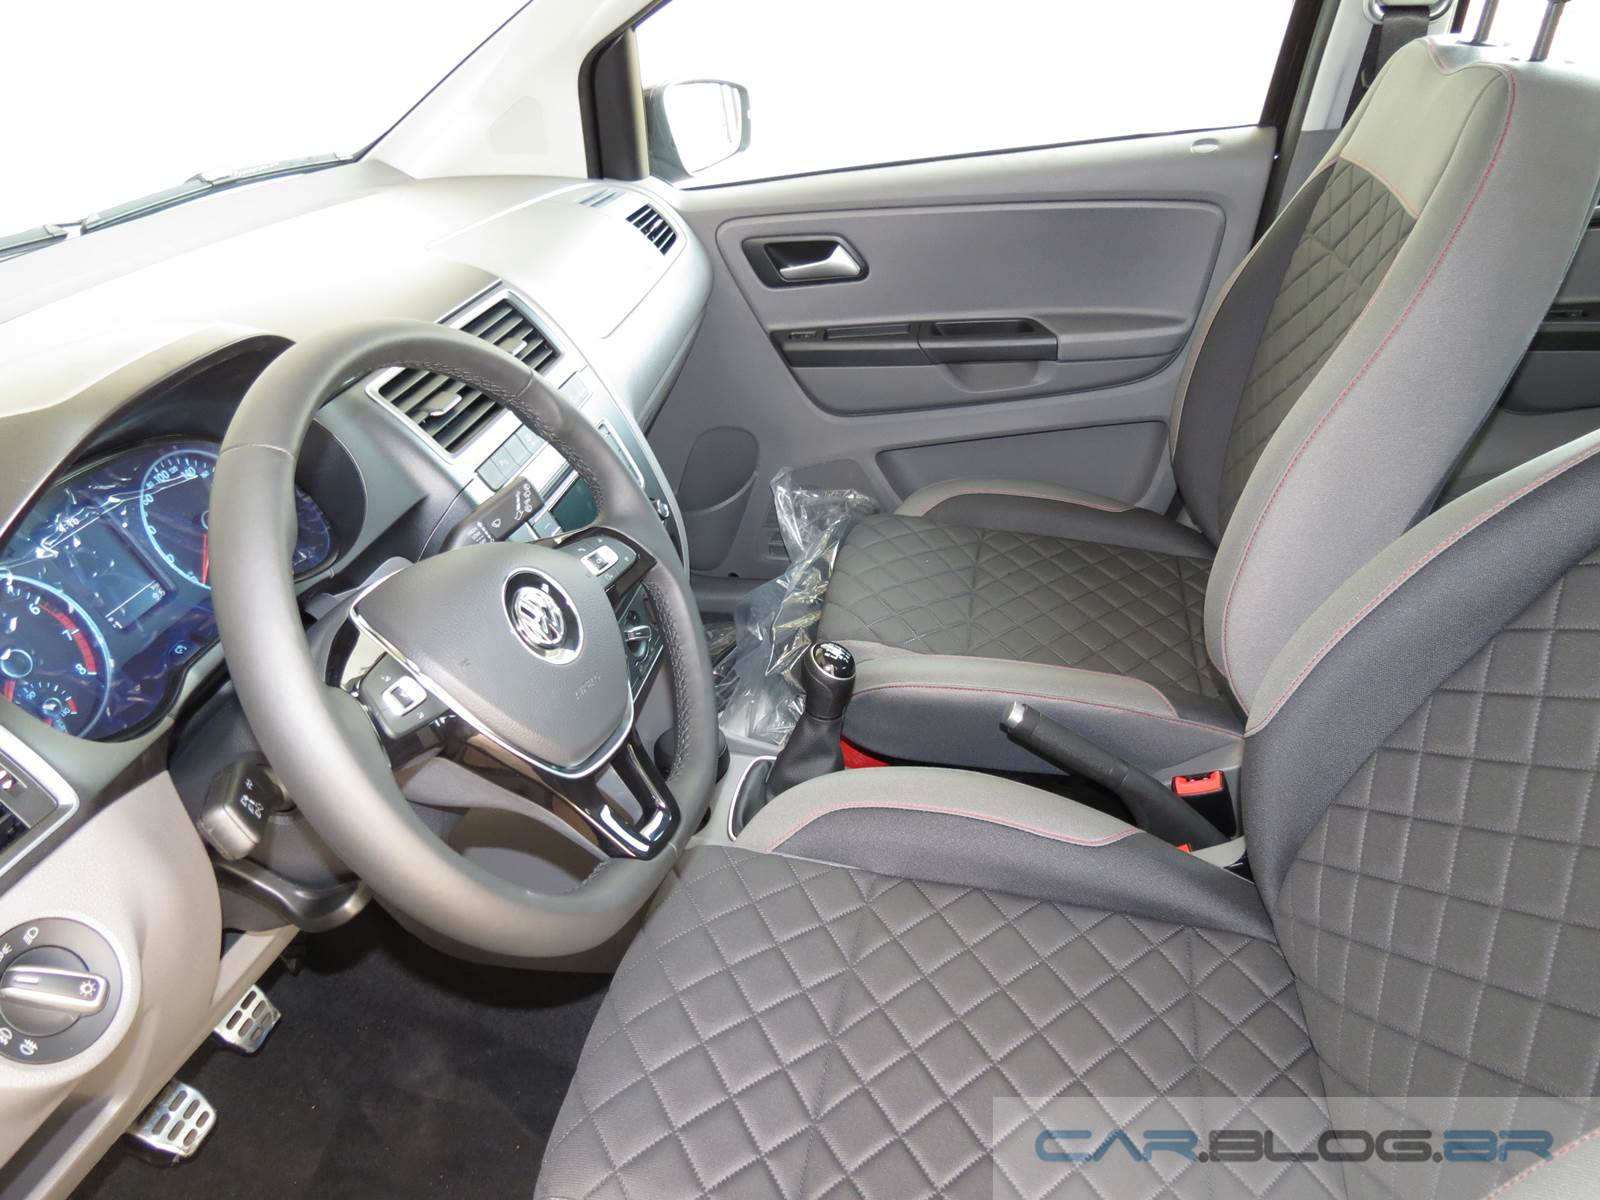 carro CrossFox 2016 - interior